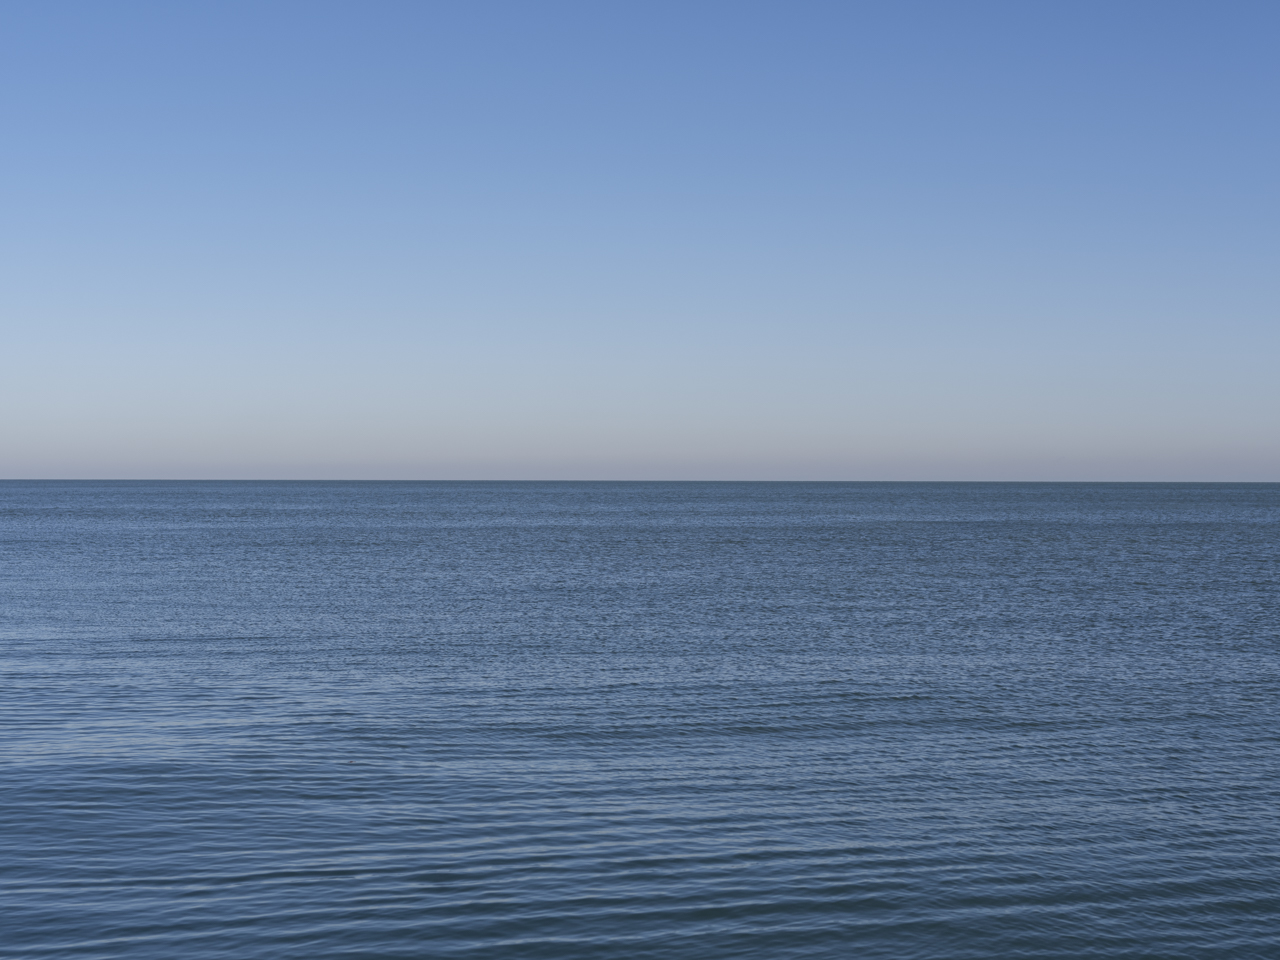 not a cloud in this brilliant blue sky over Lake Michigan on a windless day from the Lake Series, December 2019